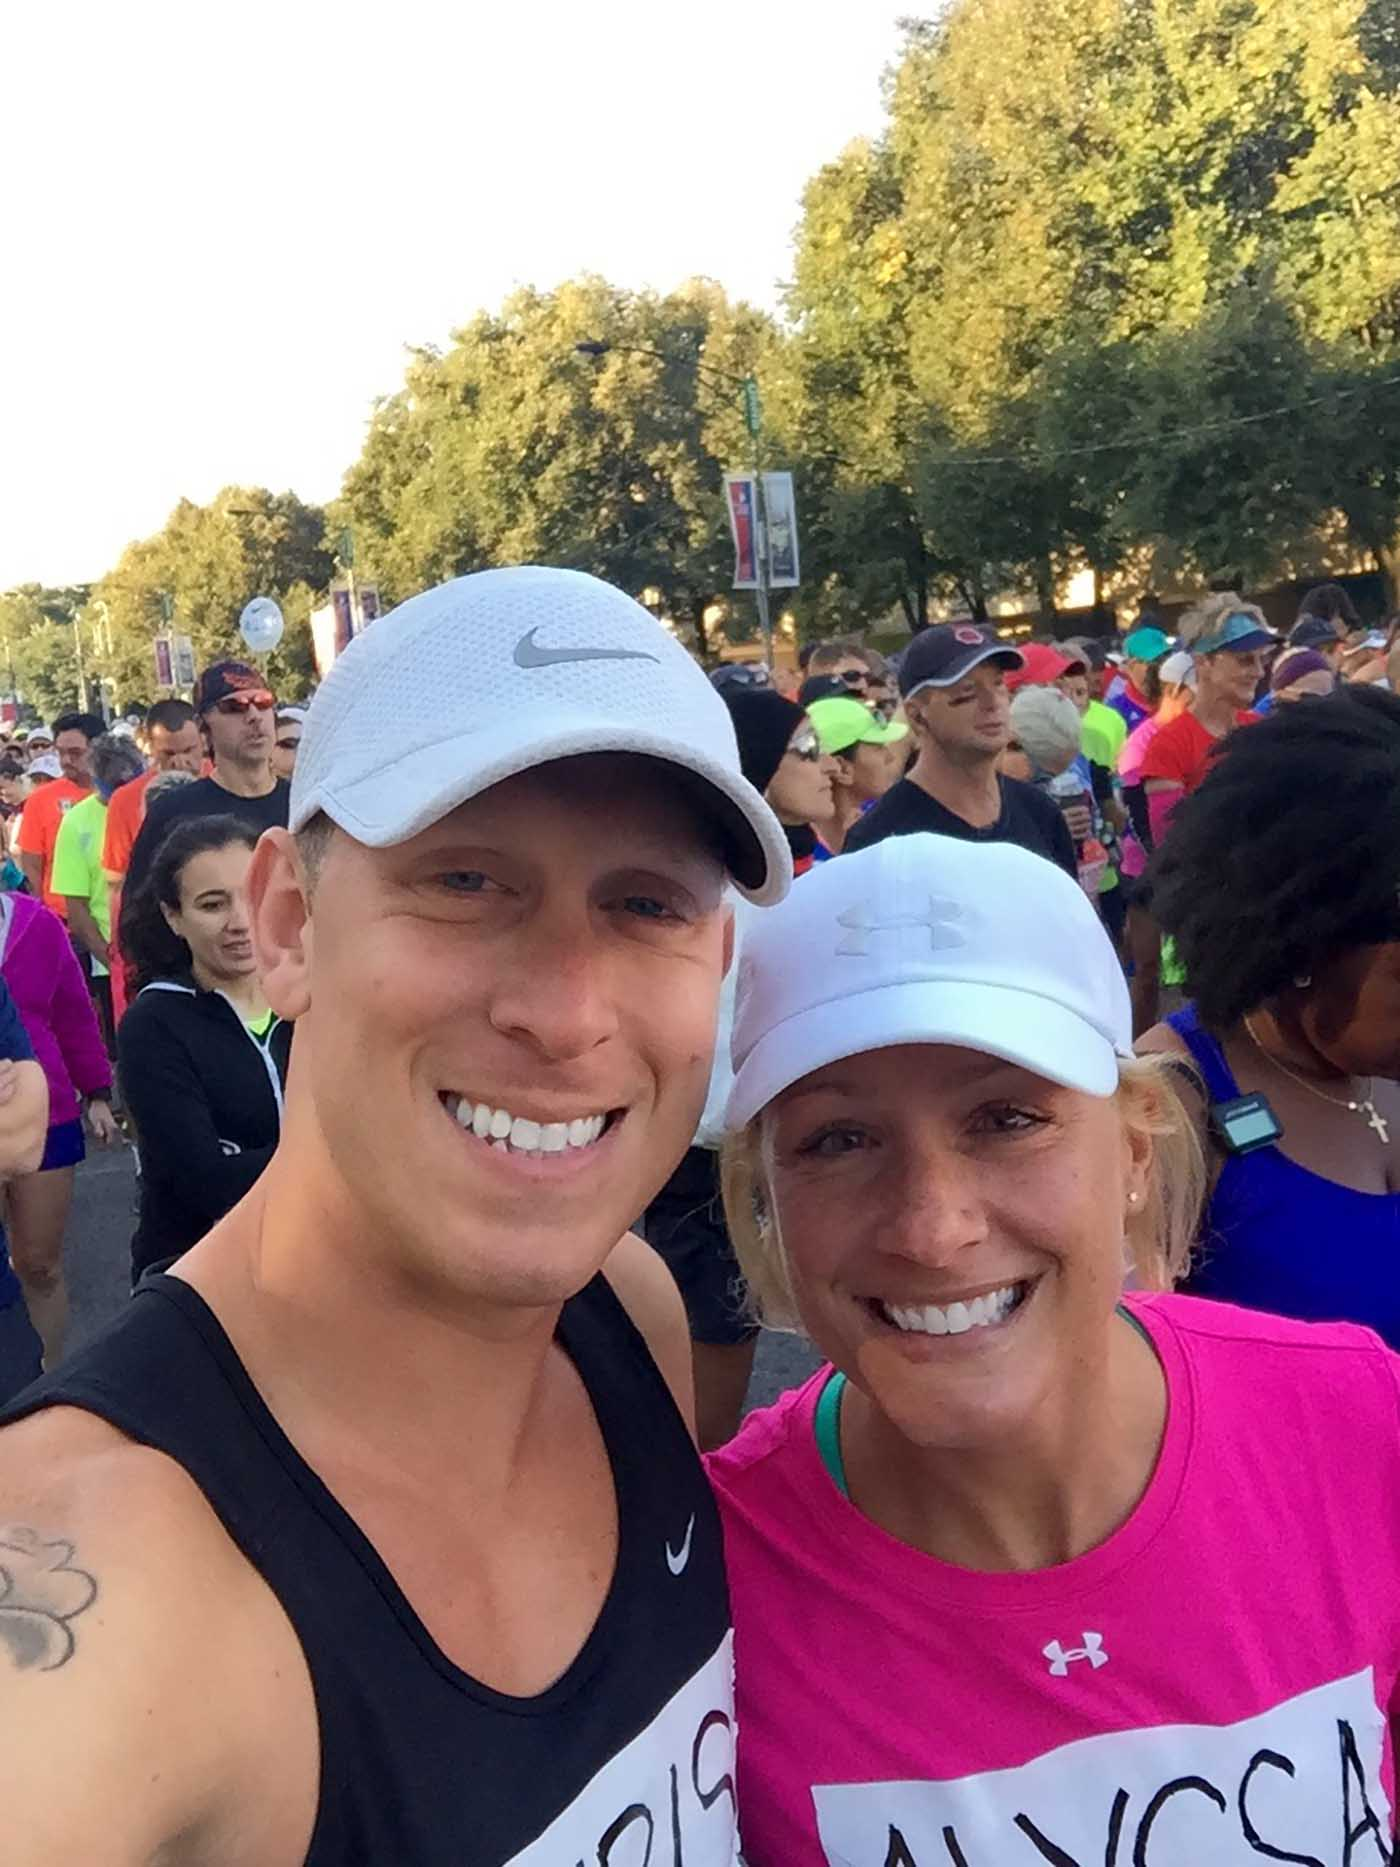 asweatlife_couple-celebrates-2015-chicago-marathon-engagement-at-2016_2016-photo